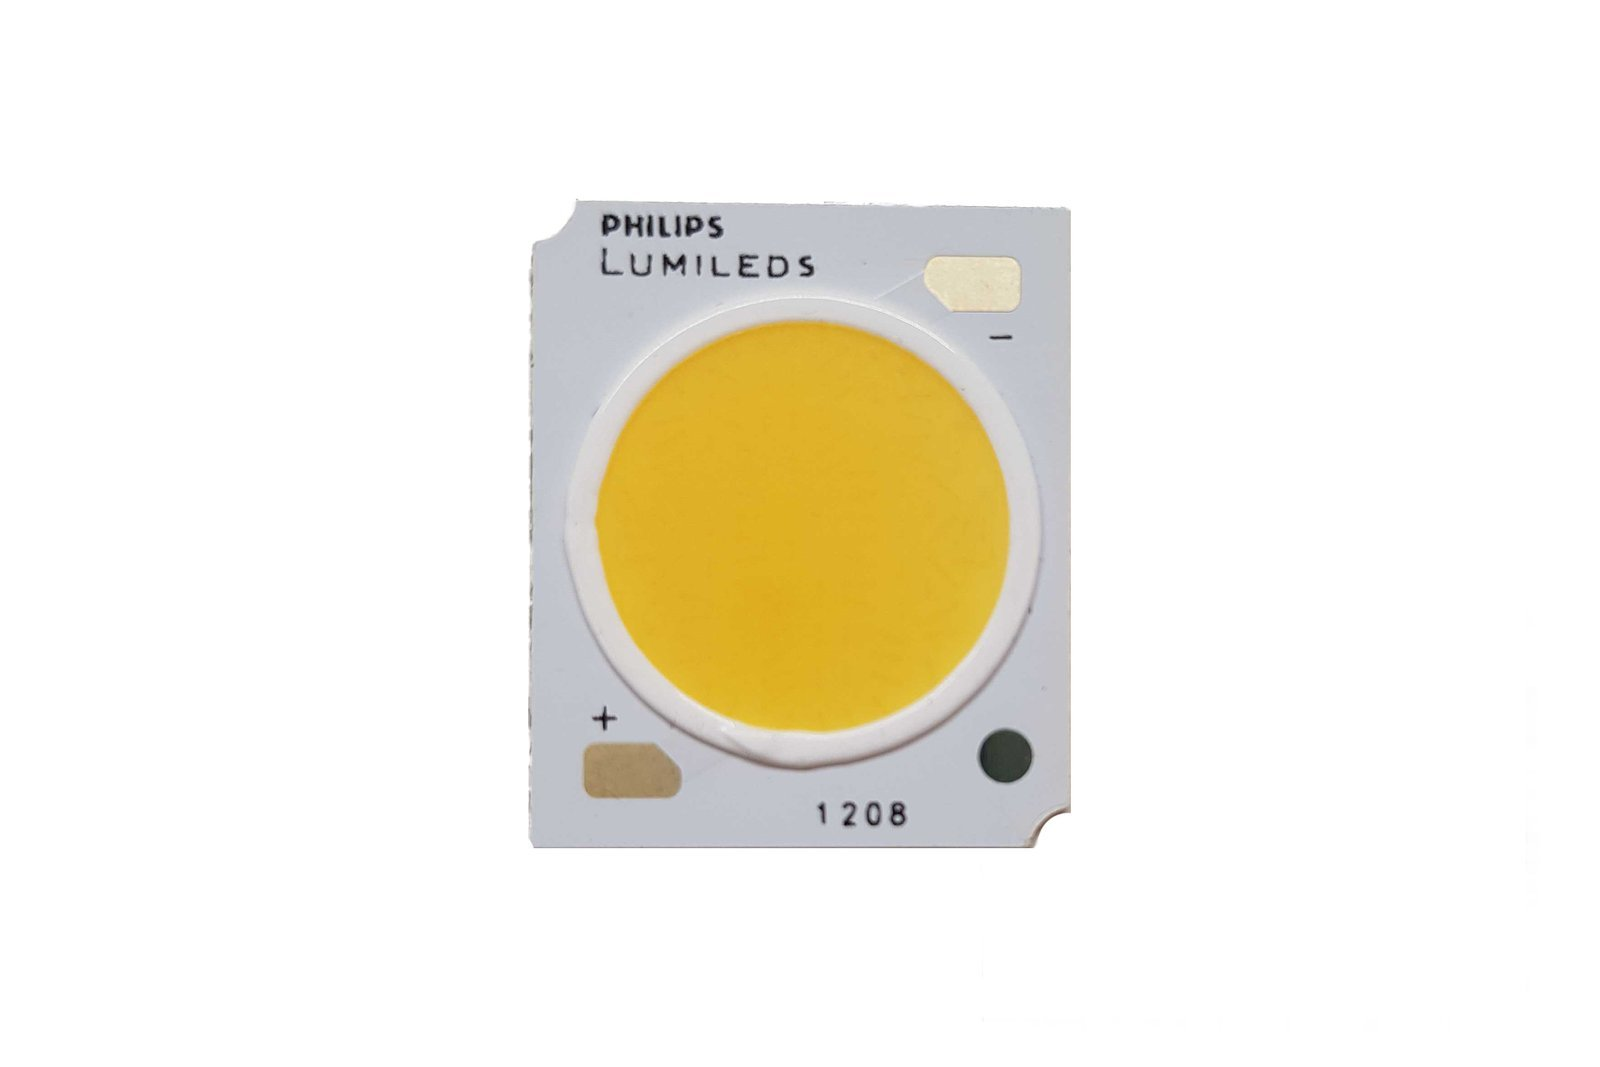 Philips LUMILEDS CoB High Power LED Emitter Neutral White 4000K LHC1-4080-1208